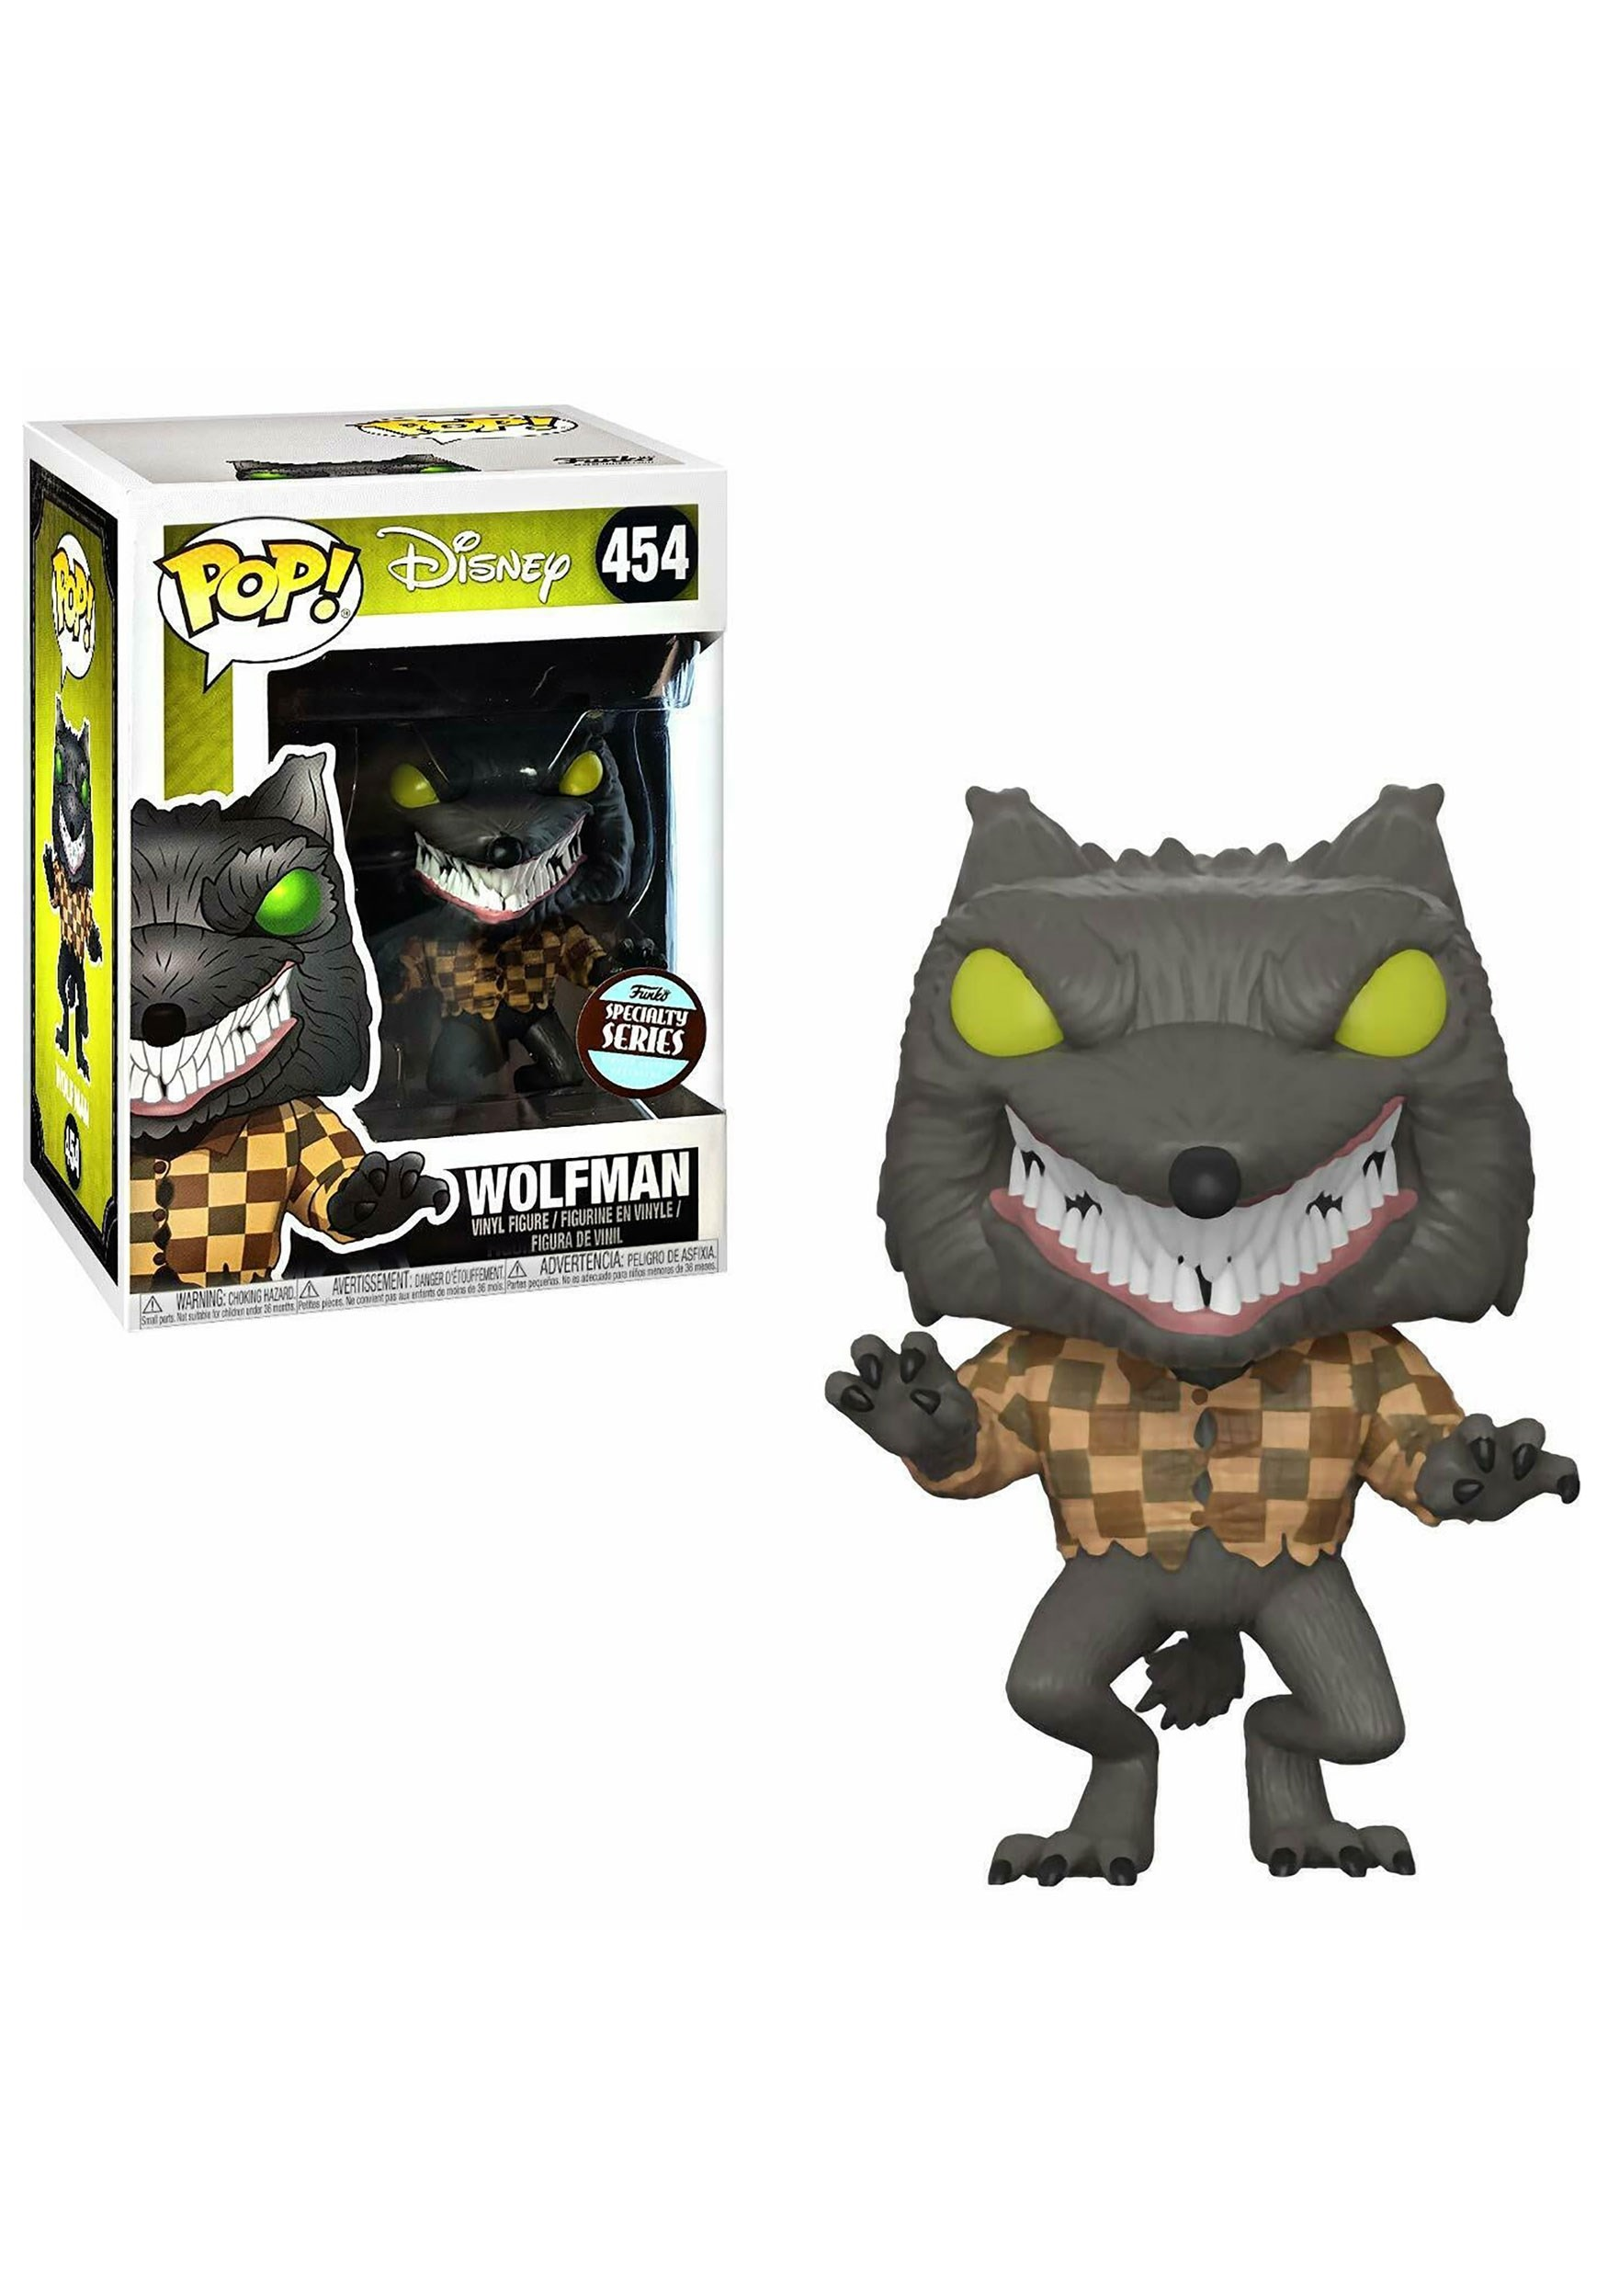 Nightmare Before Christmas Wolfman POP! Vinyl Figure